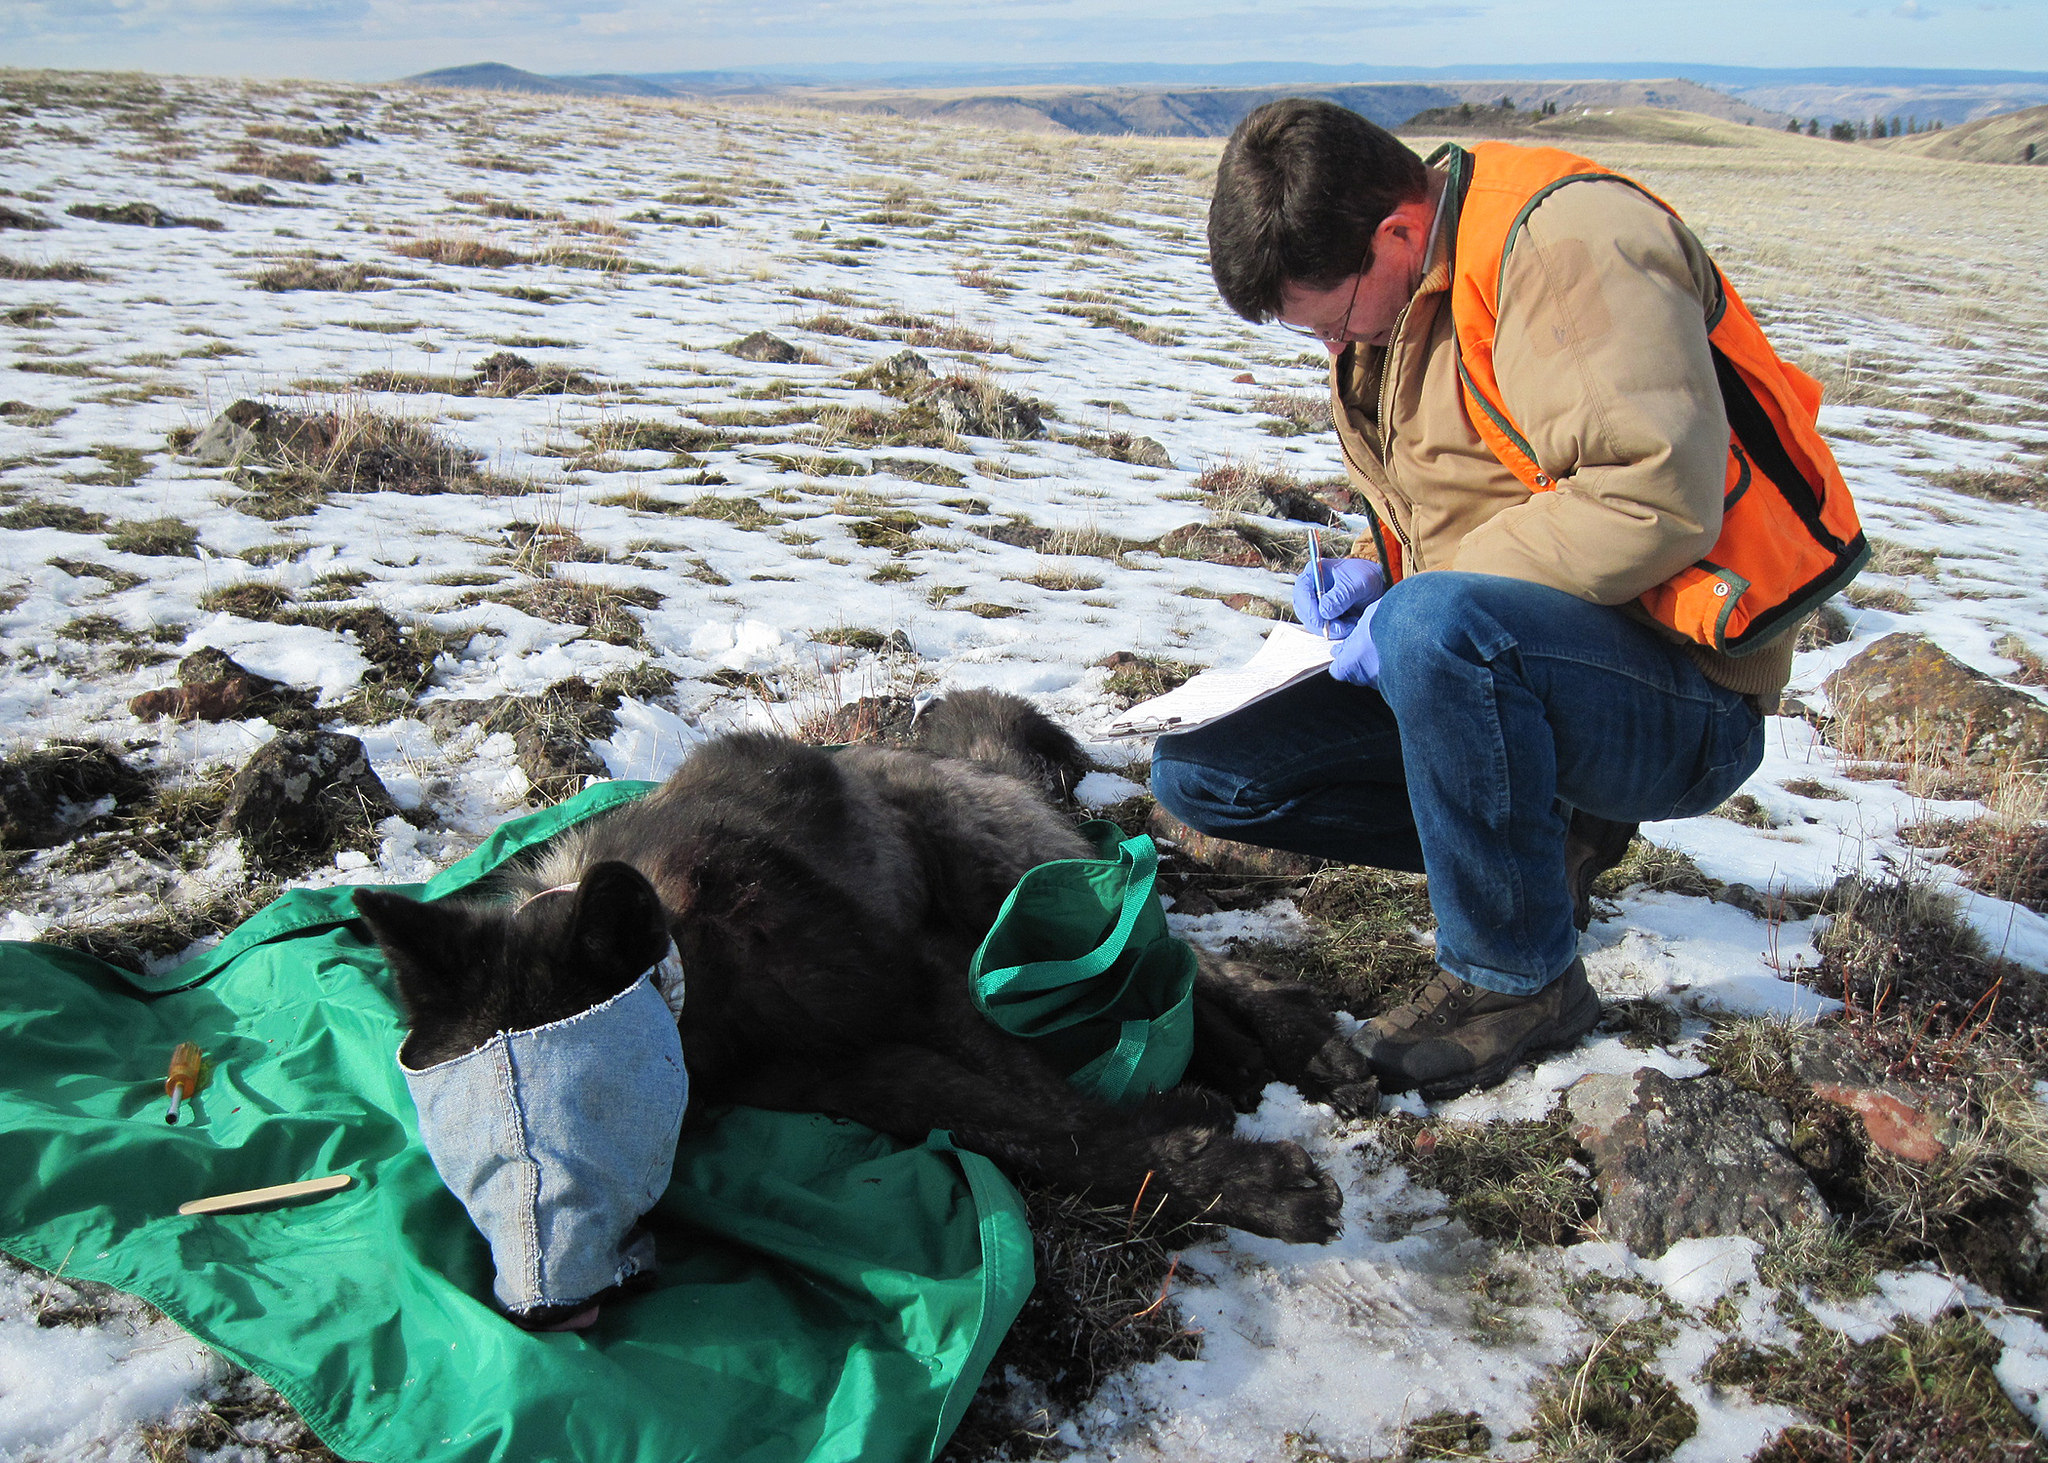 An ODFW biologist in the process of collaring wolf OR33, a 2-year-old adult male from the Imnaha pack. Larger wild animals are typically blindfolded while immobilized to protect eyes and to help calm them. Feb. 25, 2015, in Wallowa County. (ODFW)